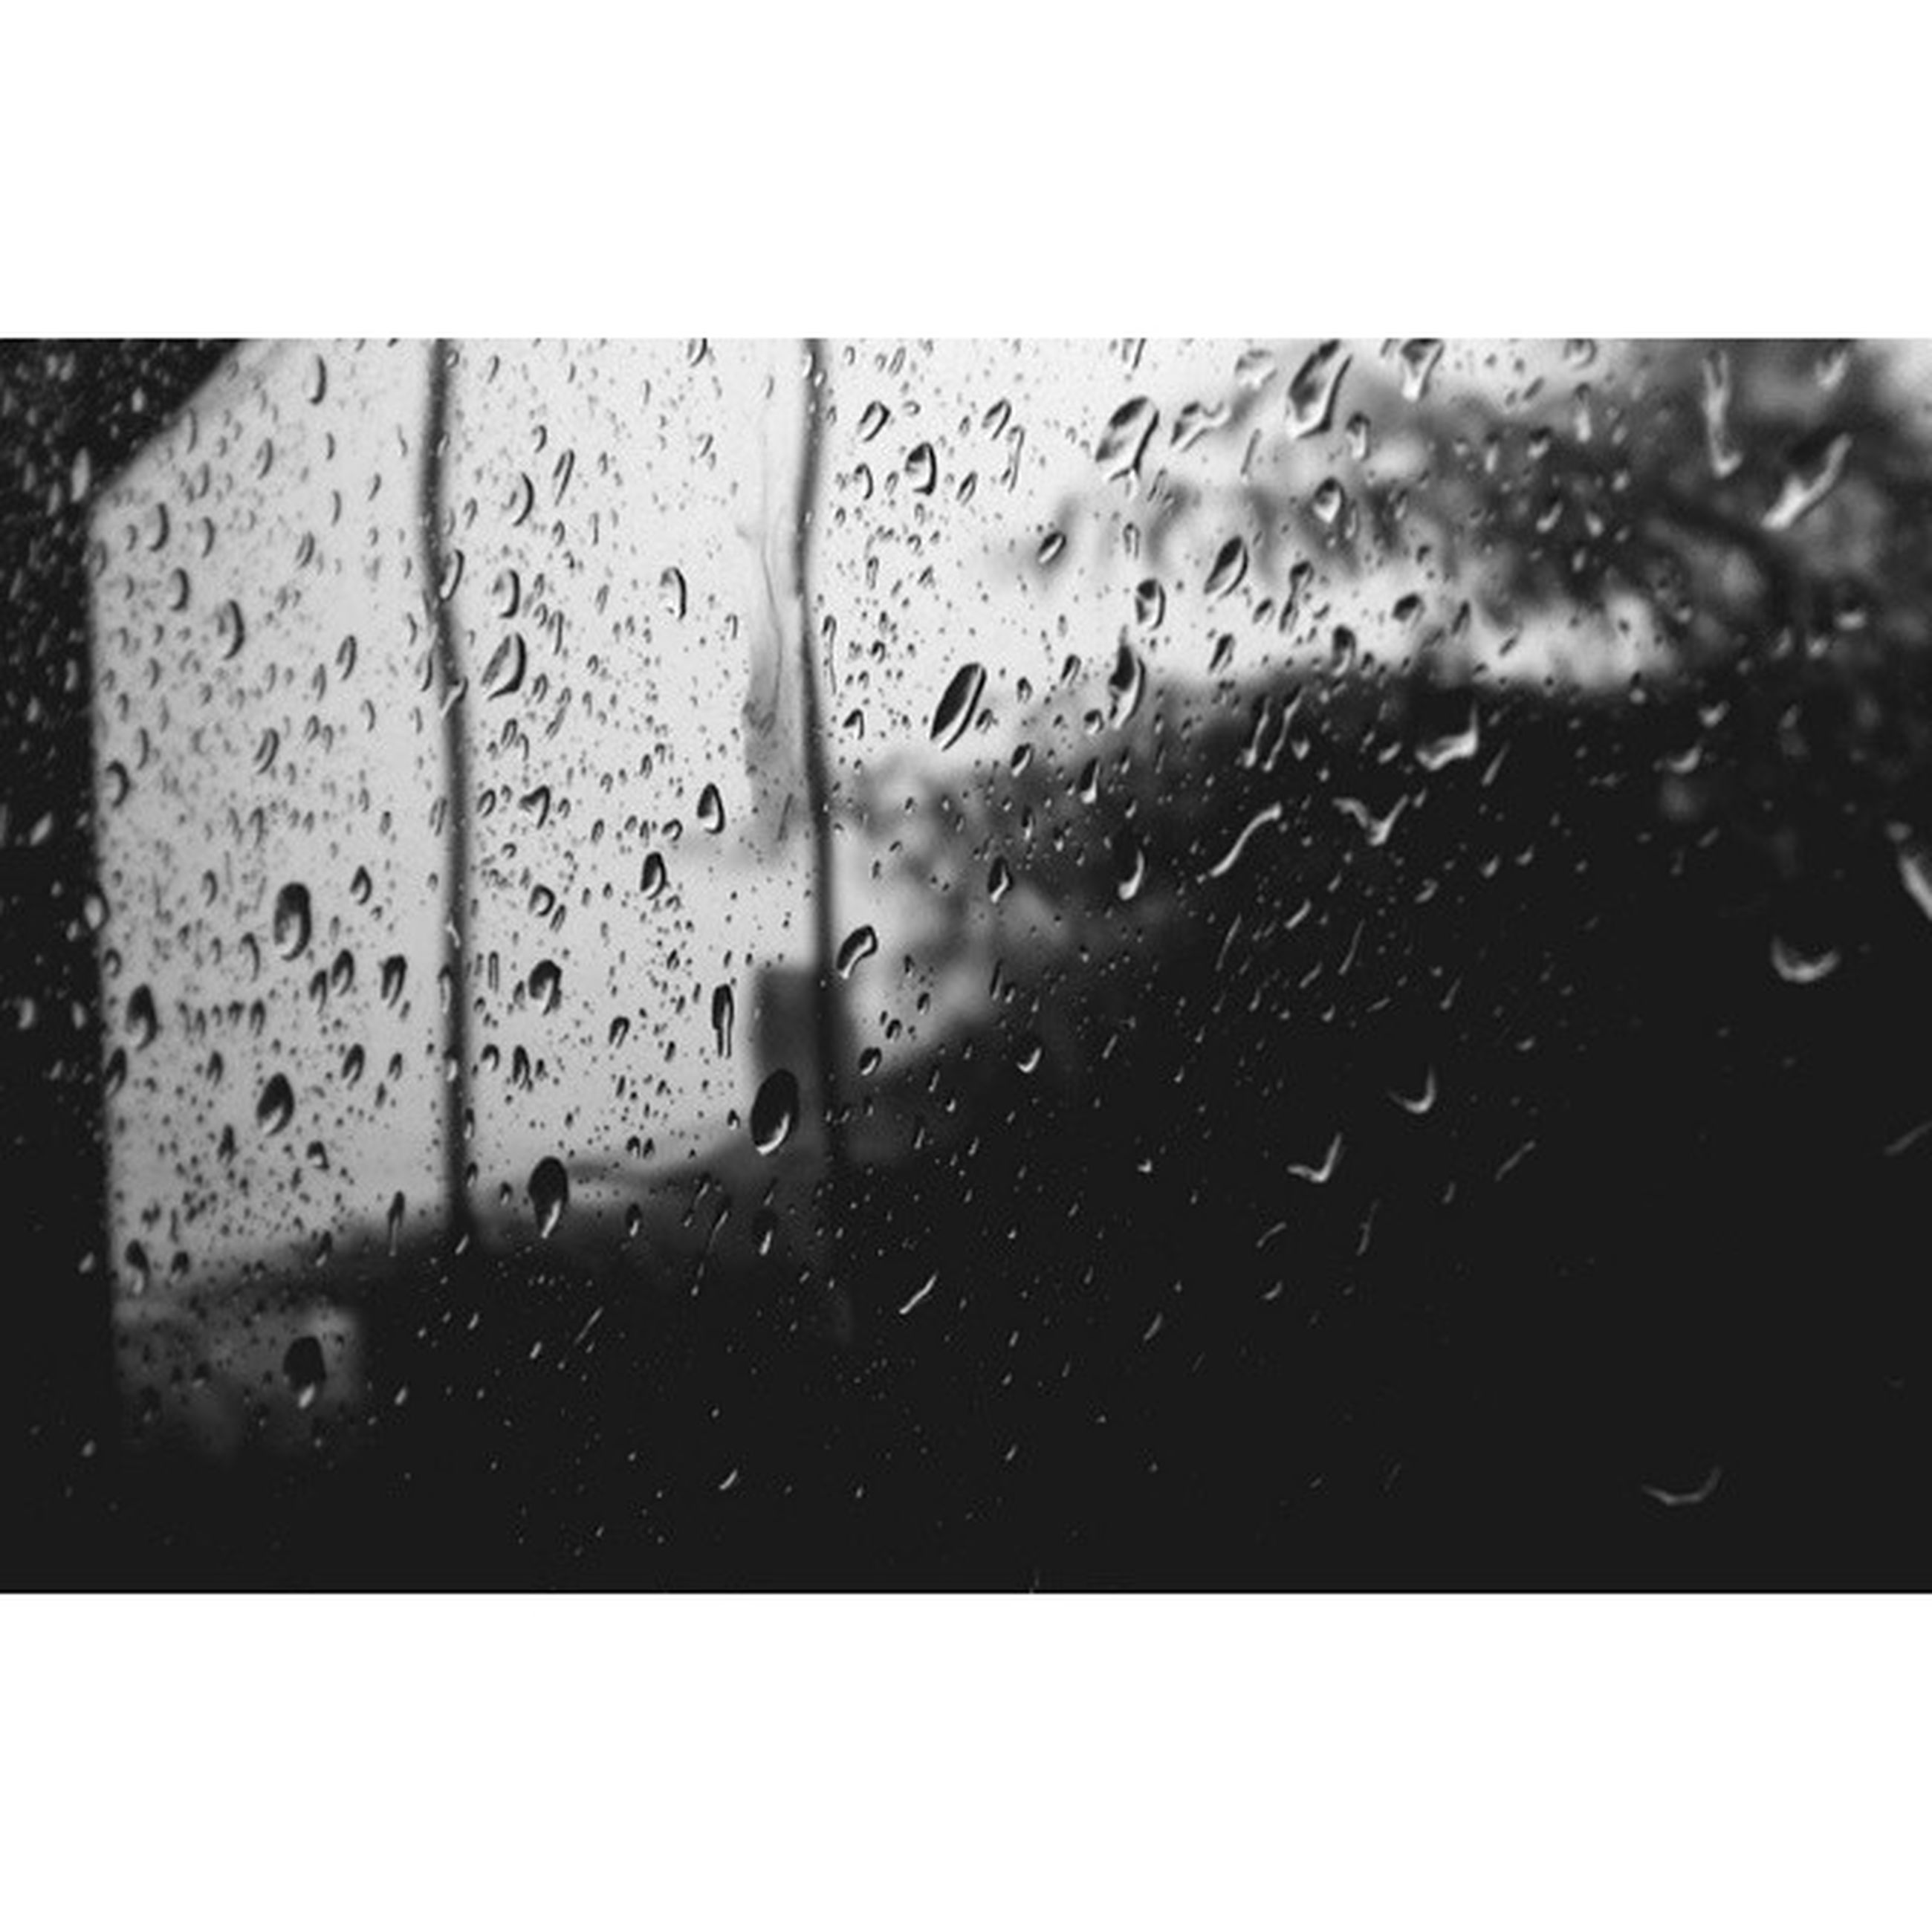 drop, wet, window, rain, transparent, water, glass - material, full frame, indoors, backgrounds, raindrop, transfer print, weather, season, glass, close-up, auto post production filter, sky, droplet, focus on foreground